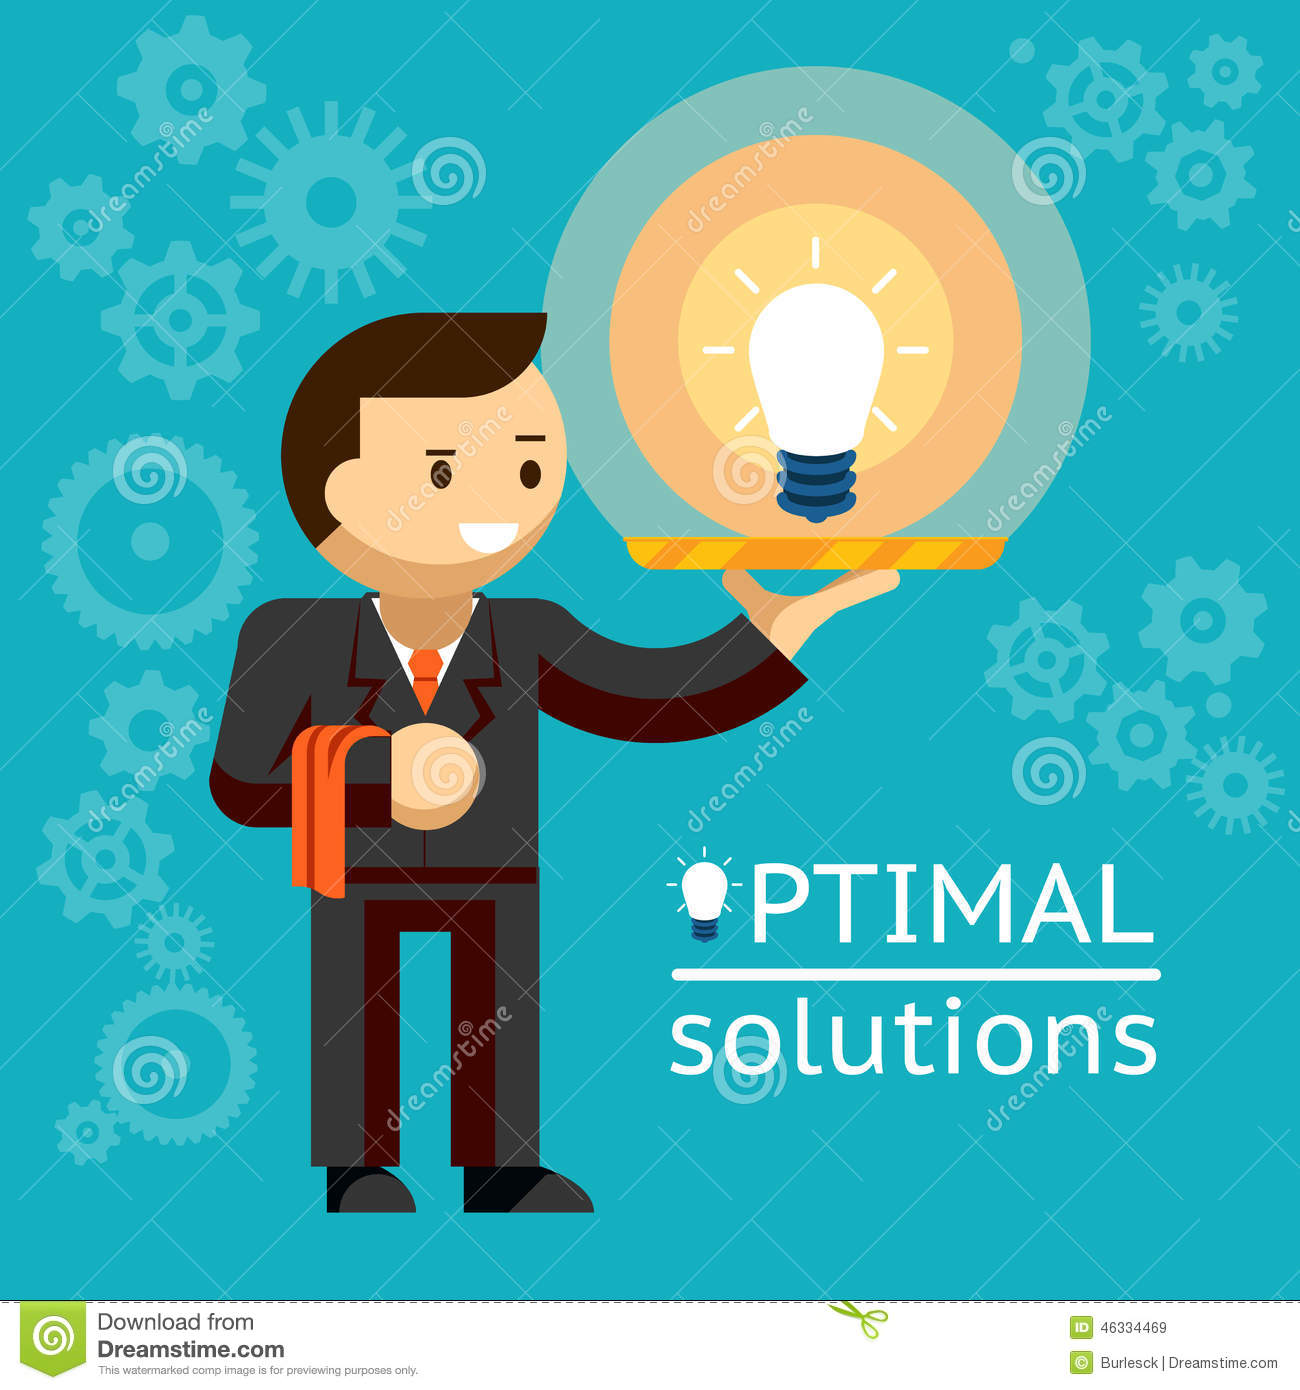 Optimal Solutions Concept Stock Vector. Illustration Of